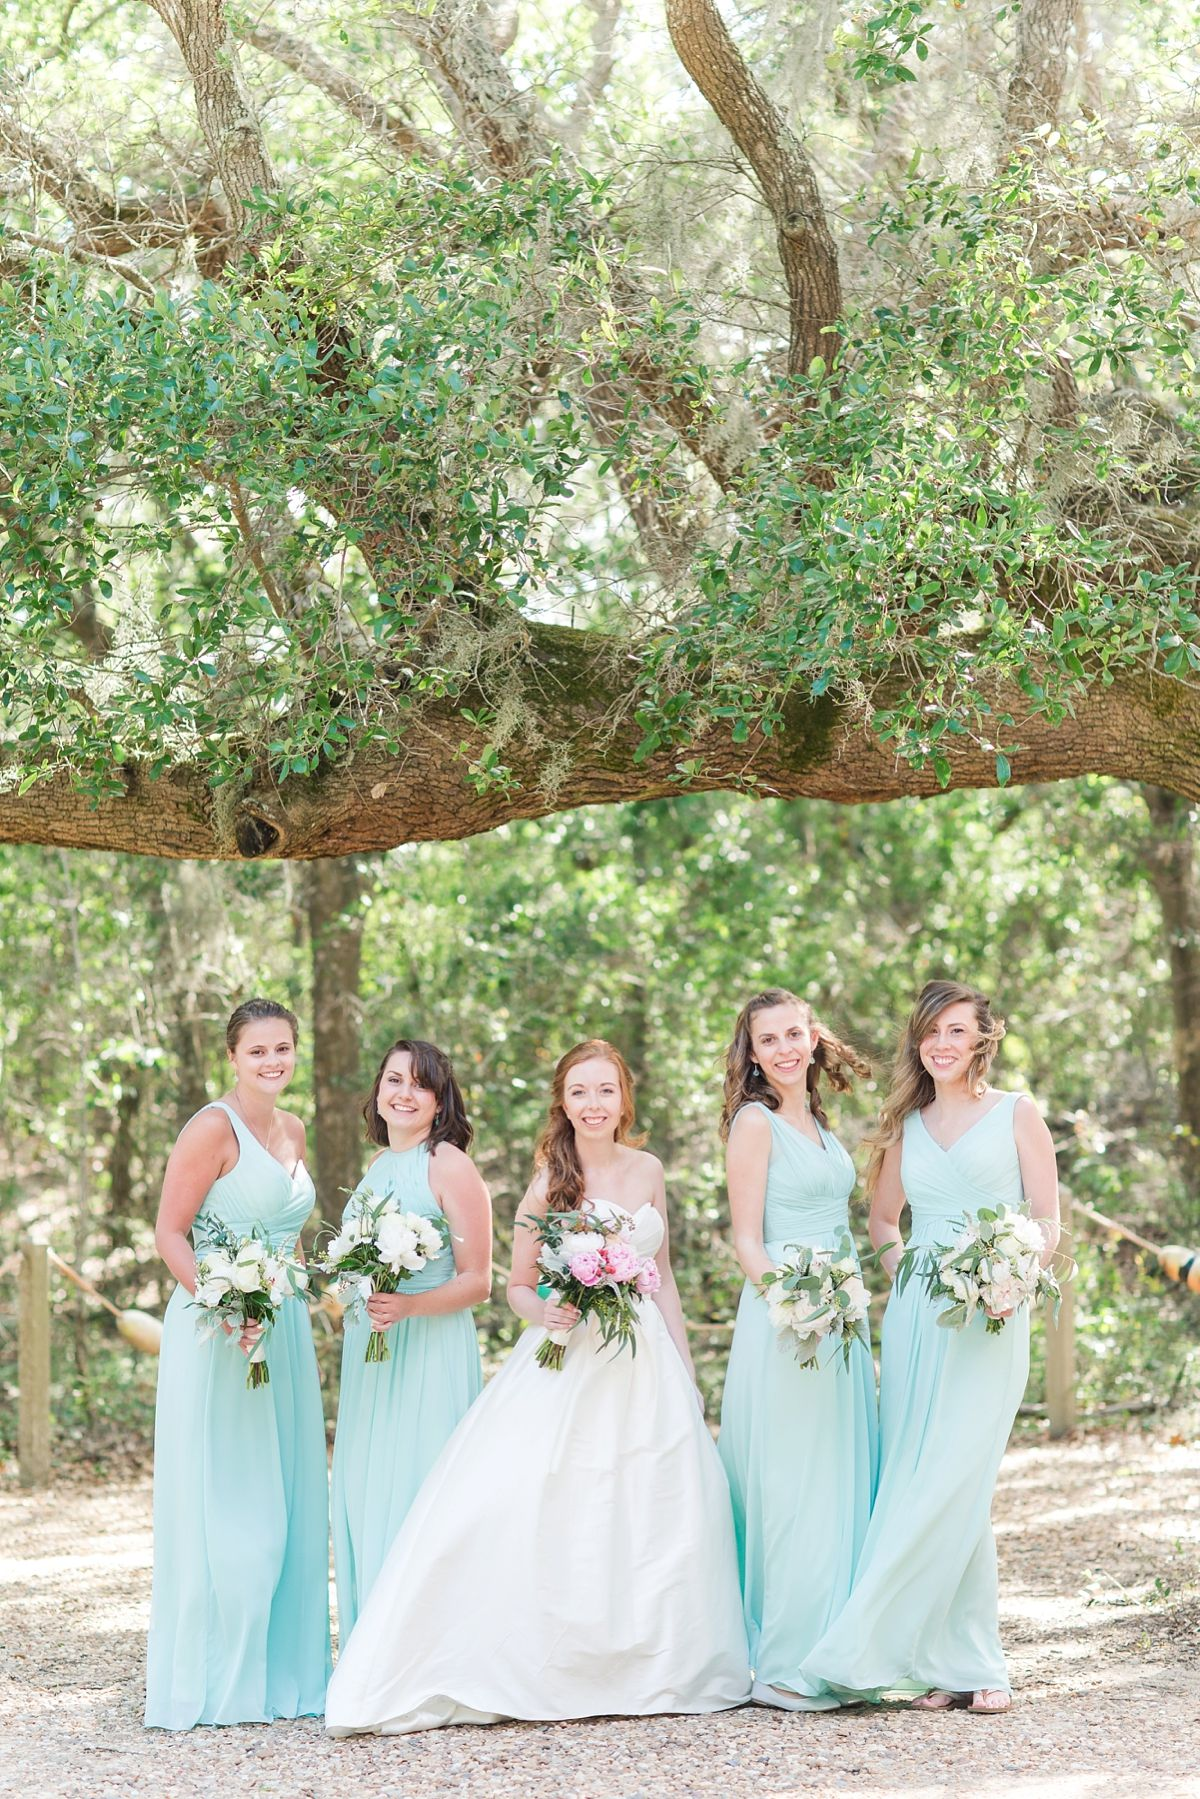 Dusty Blue Printed Floral And Misty Sage Green Mismatched Bridesmaid Dresses All Printed Bridesmaid Dresses Mixed Bridesmaid Dresses Sage Bridesmaid Dresses